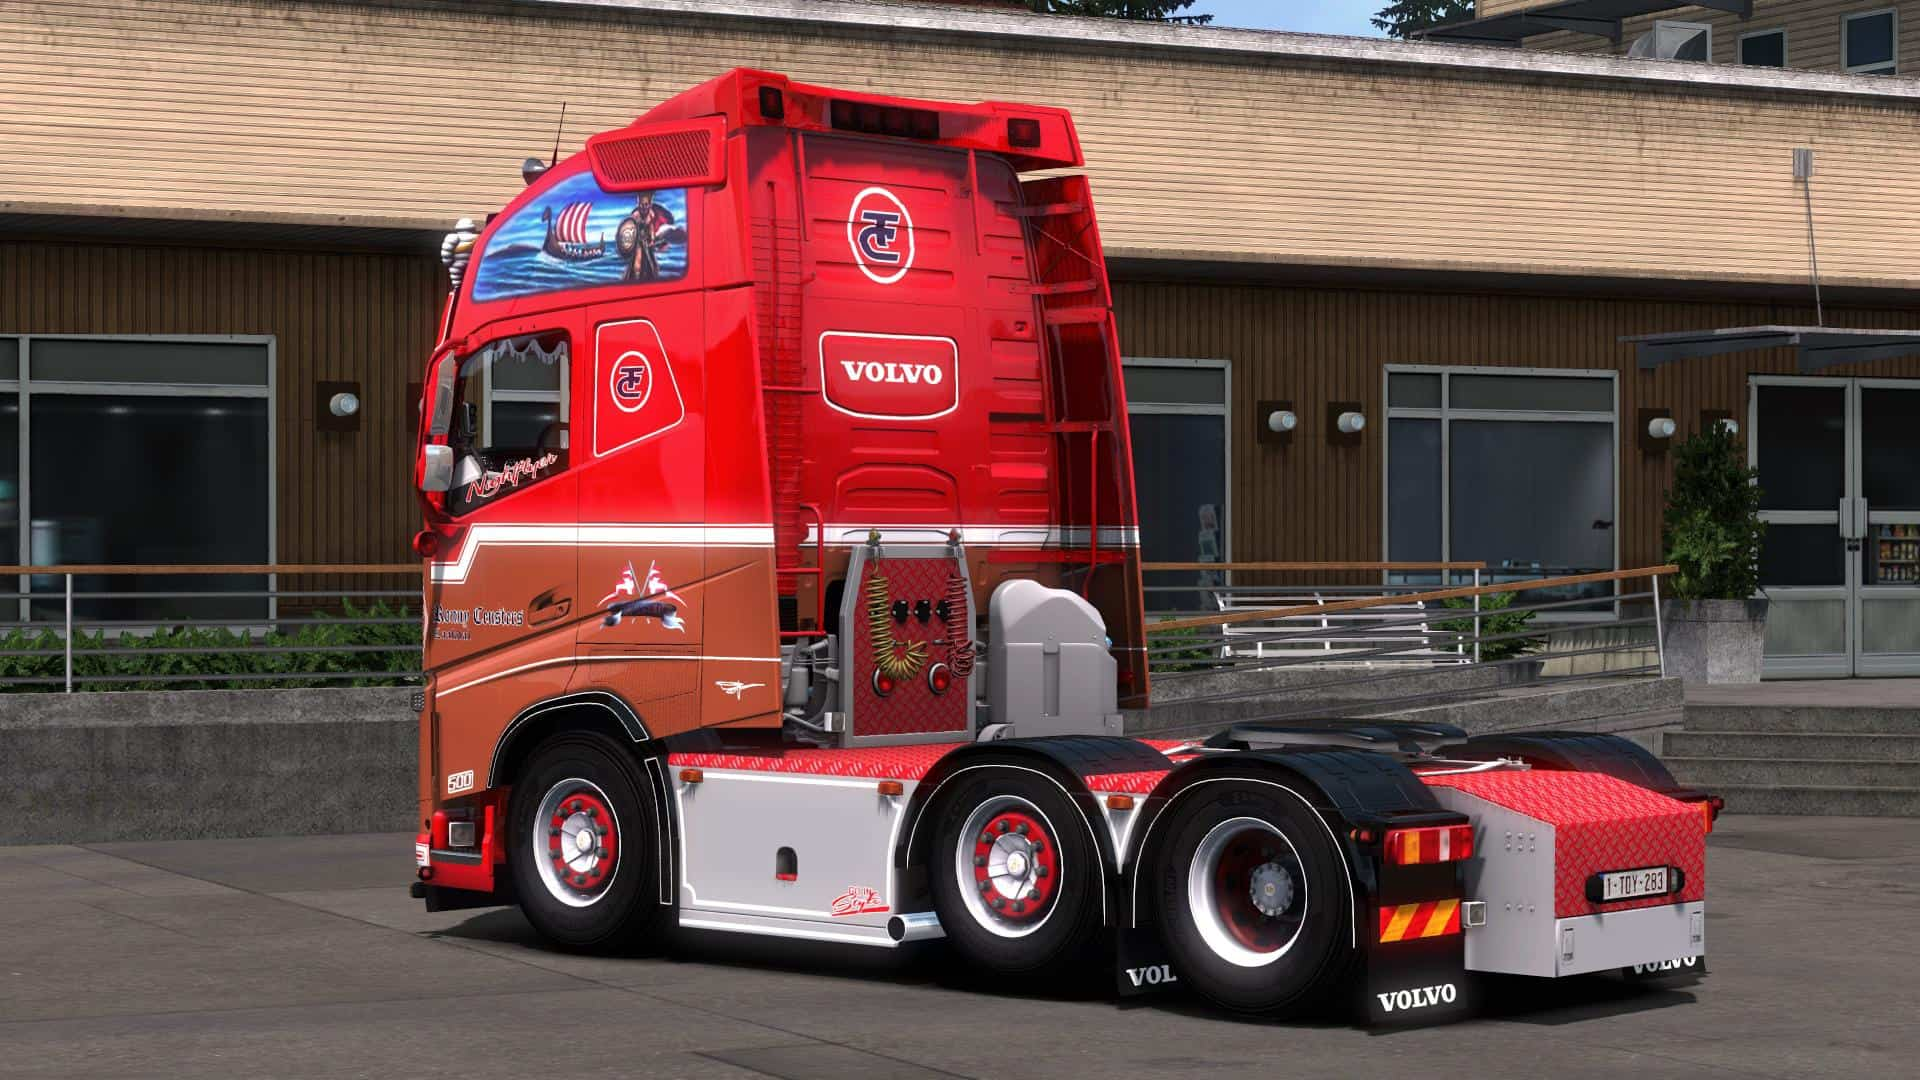 Ronny Ceusters Volvo Fh16 540 1 35 X Truck Ets2 Mod